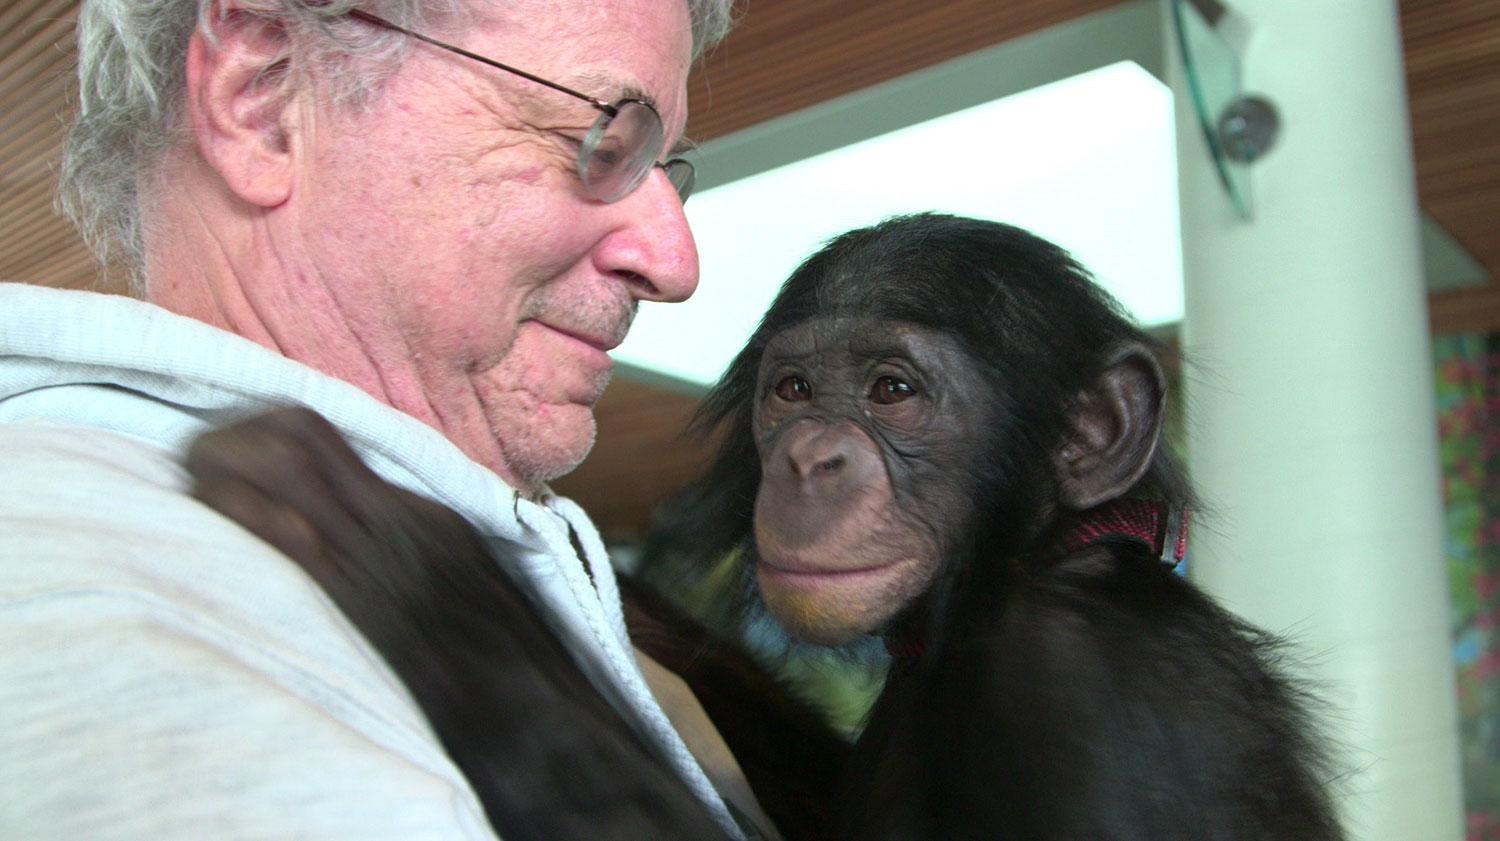 Steve Wise of The Nonhuman Rights Project - My Dream for Animals Interview